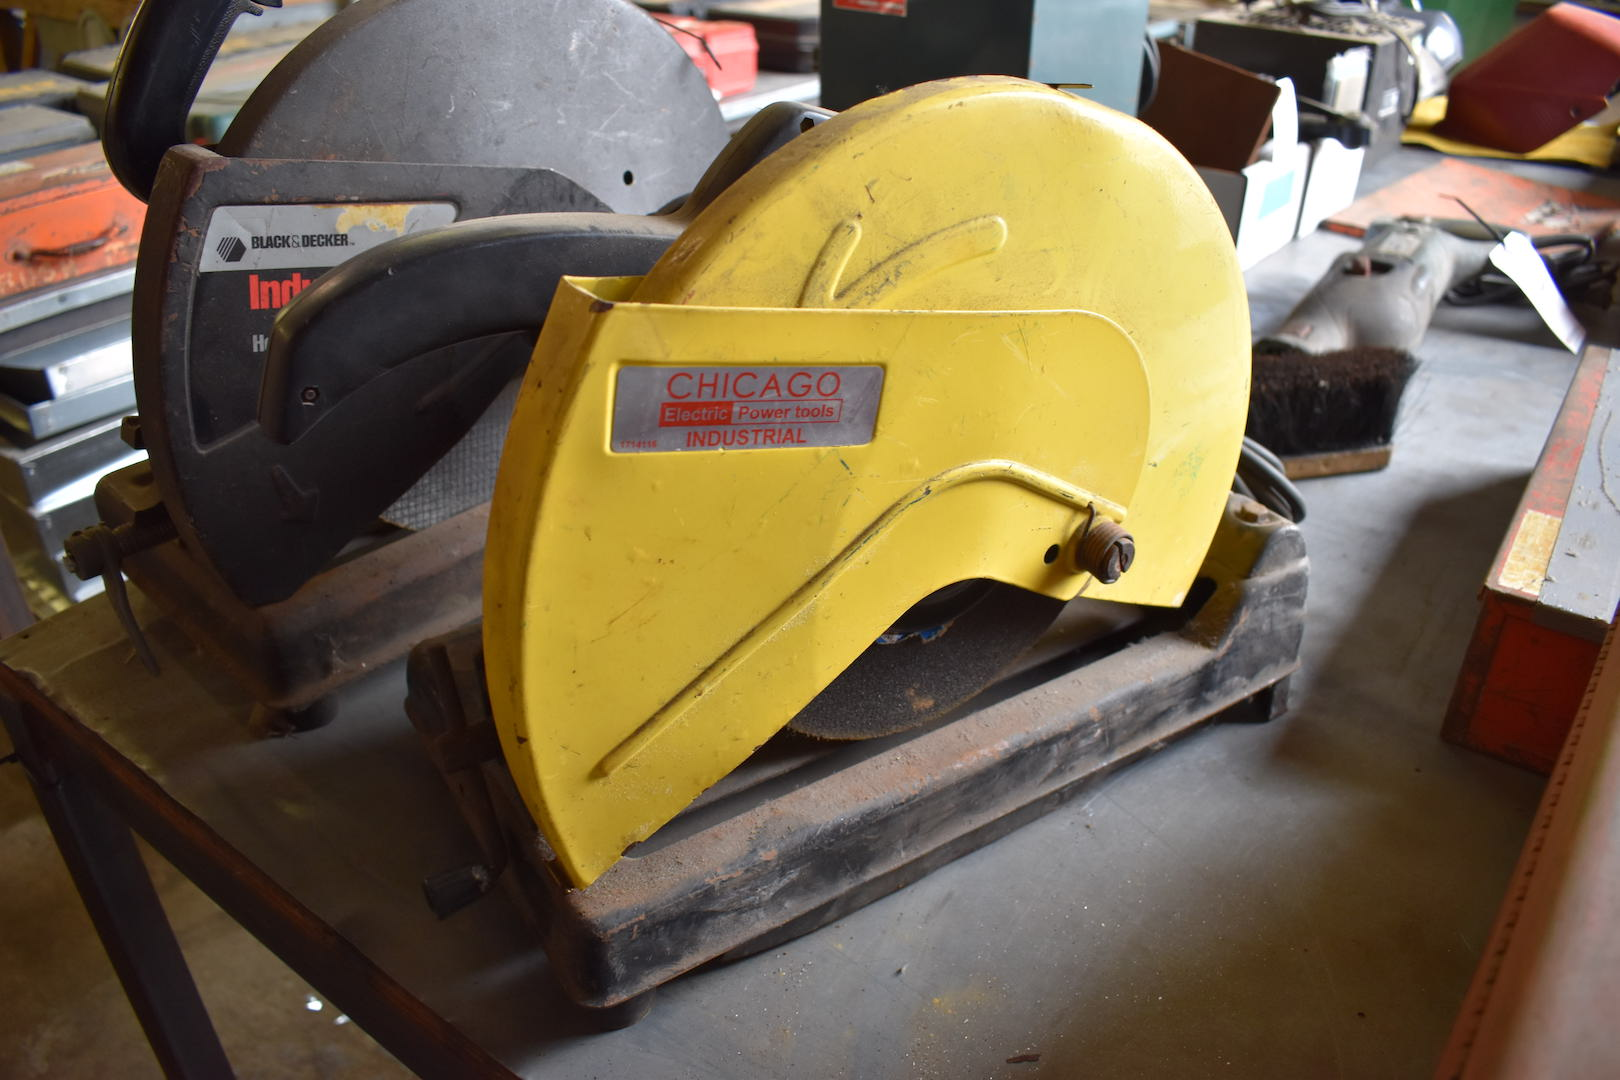 Lot 25 - Chicago Electric Power Tools Industrial Abrasive Cut-off Saw